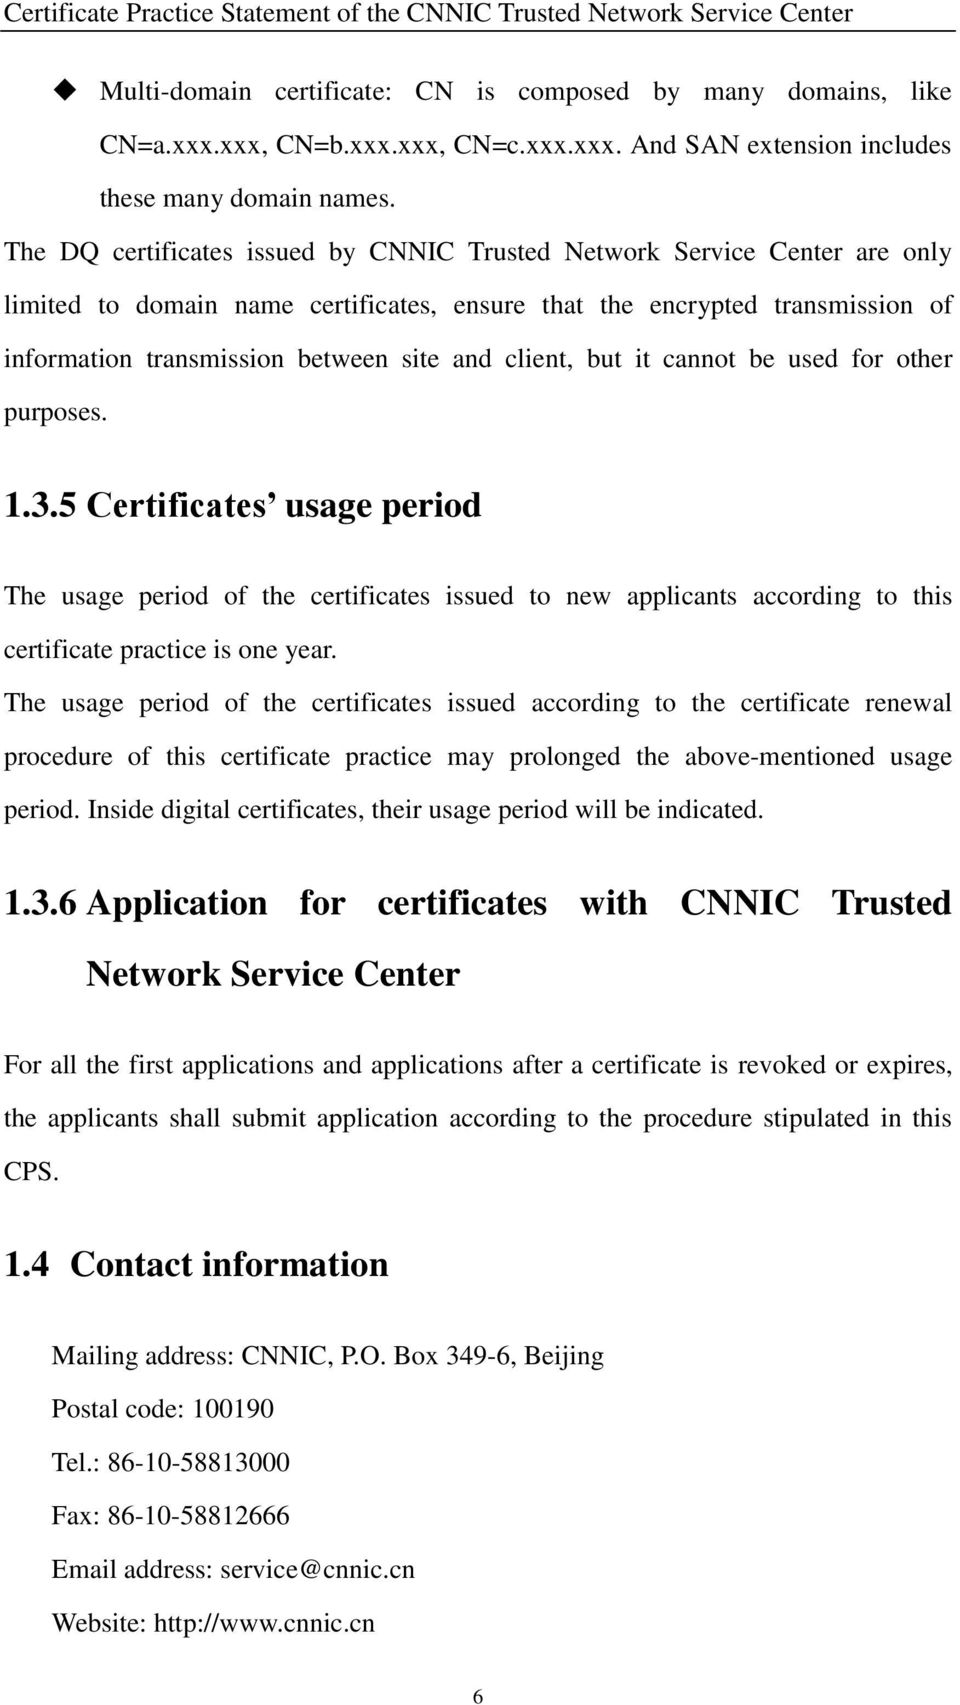 client, but it cannot be used for other purposes. 1.3.5 Certificates usage period The usage period of the certificates issued to new applicants according to this certificate practice is one year.